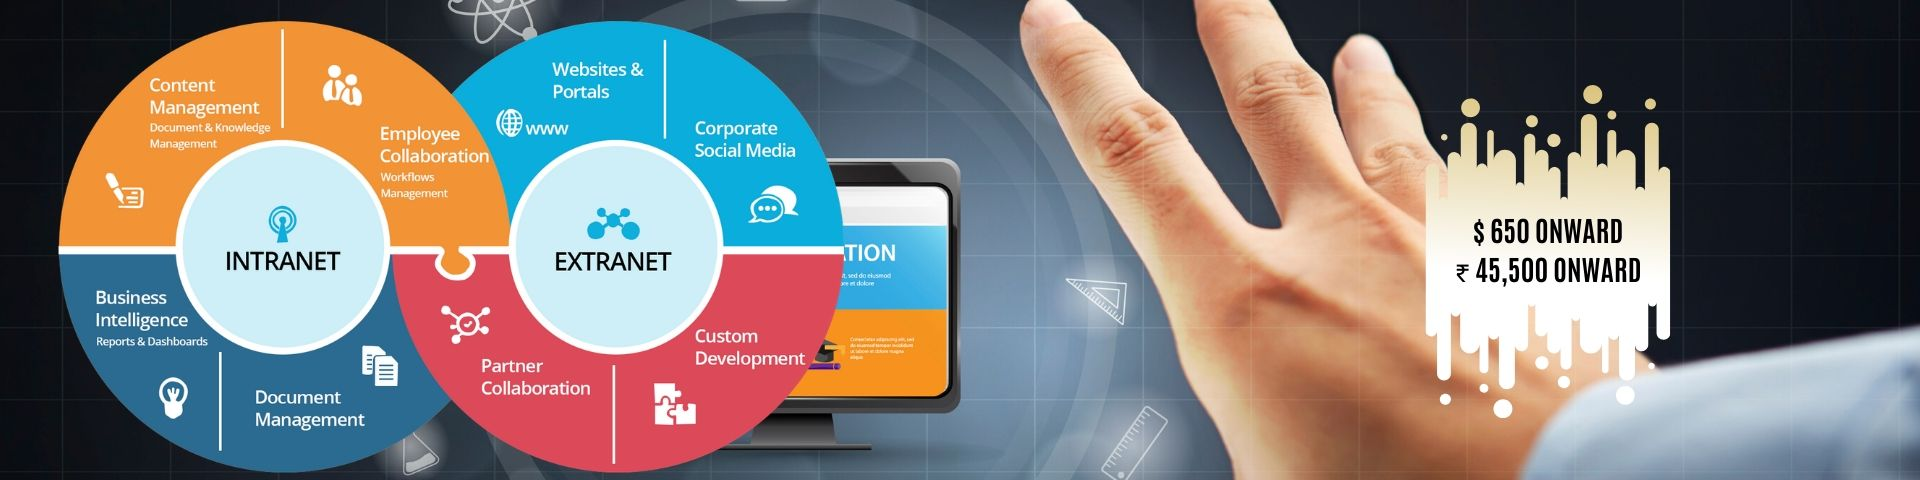 eScalent Intranets and Extranets Banner - eScalent   Web Design Agency in India